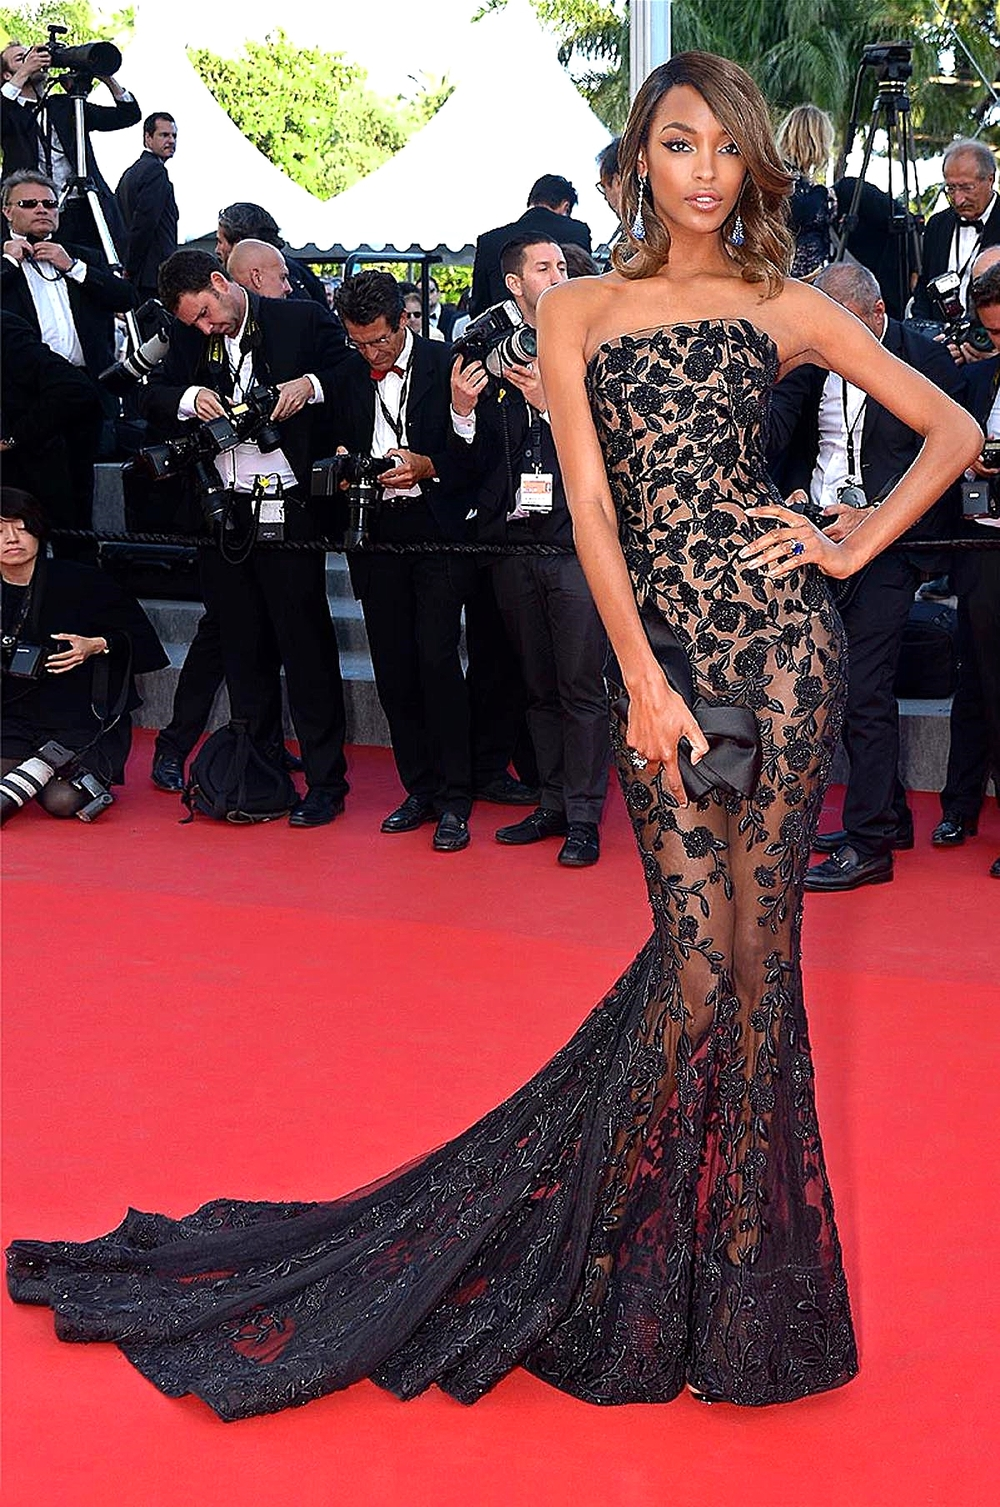 Jourdan Dunn in  Ralph & Russo Couture                              Ralph & Russo/ facebook.com